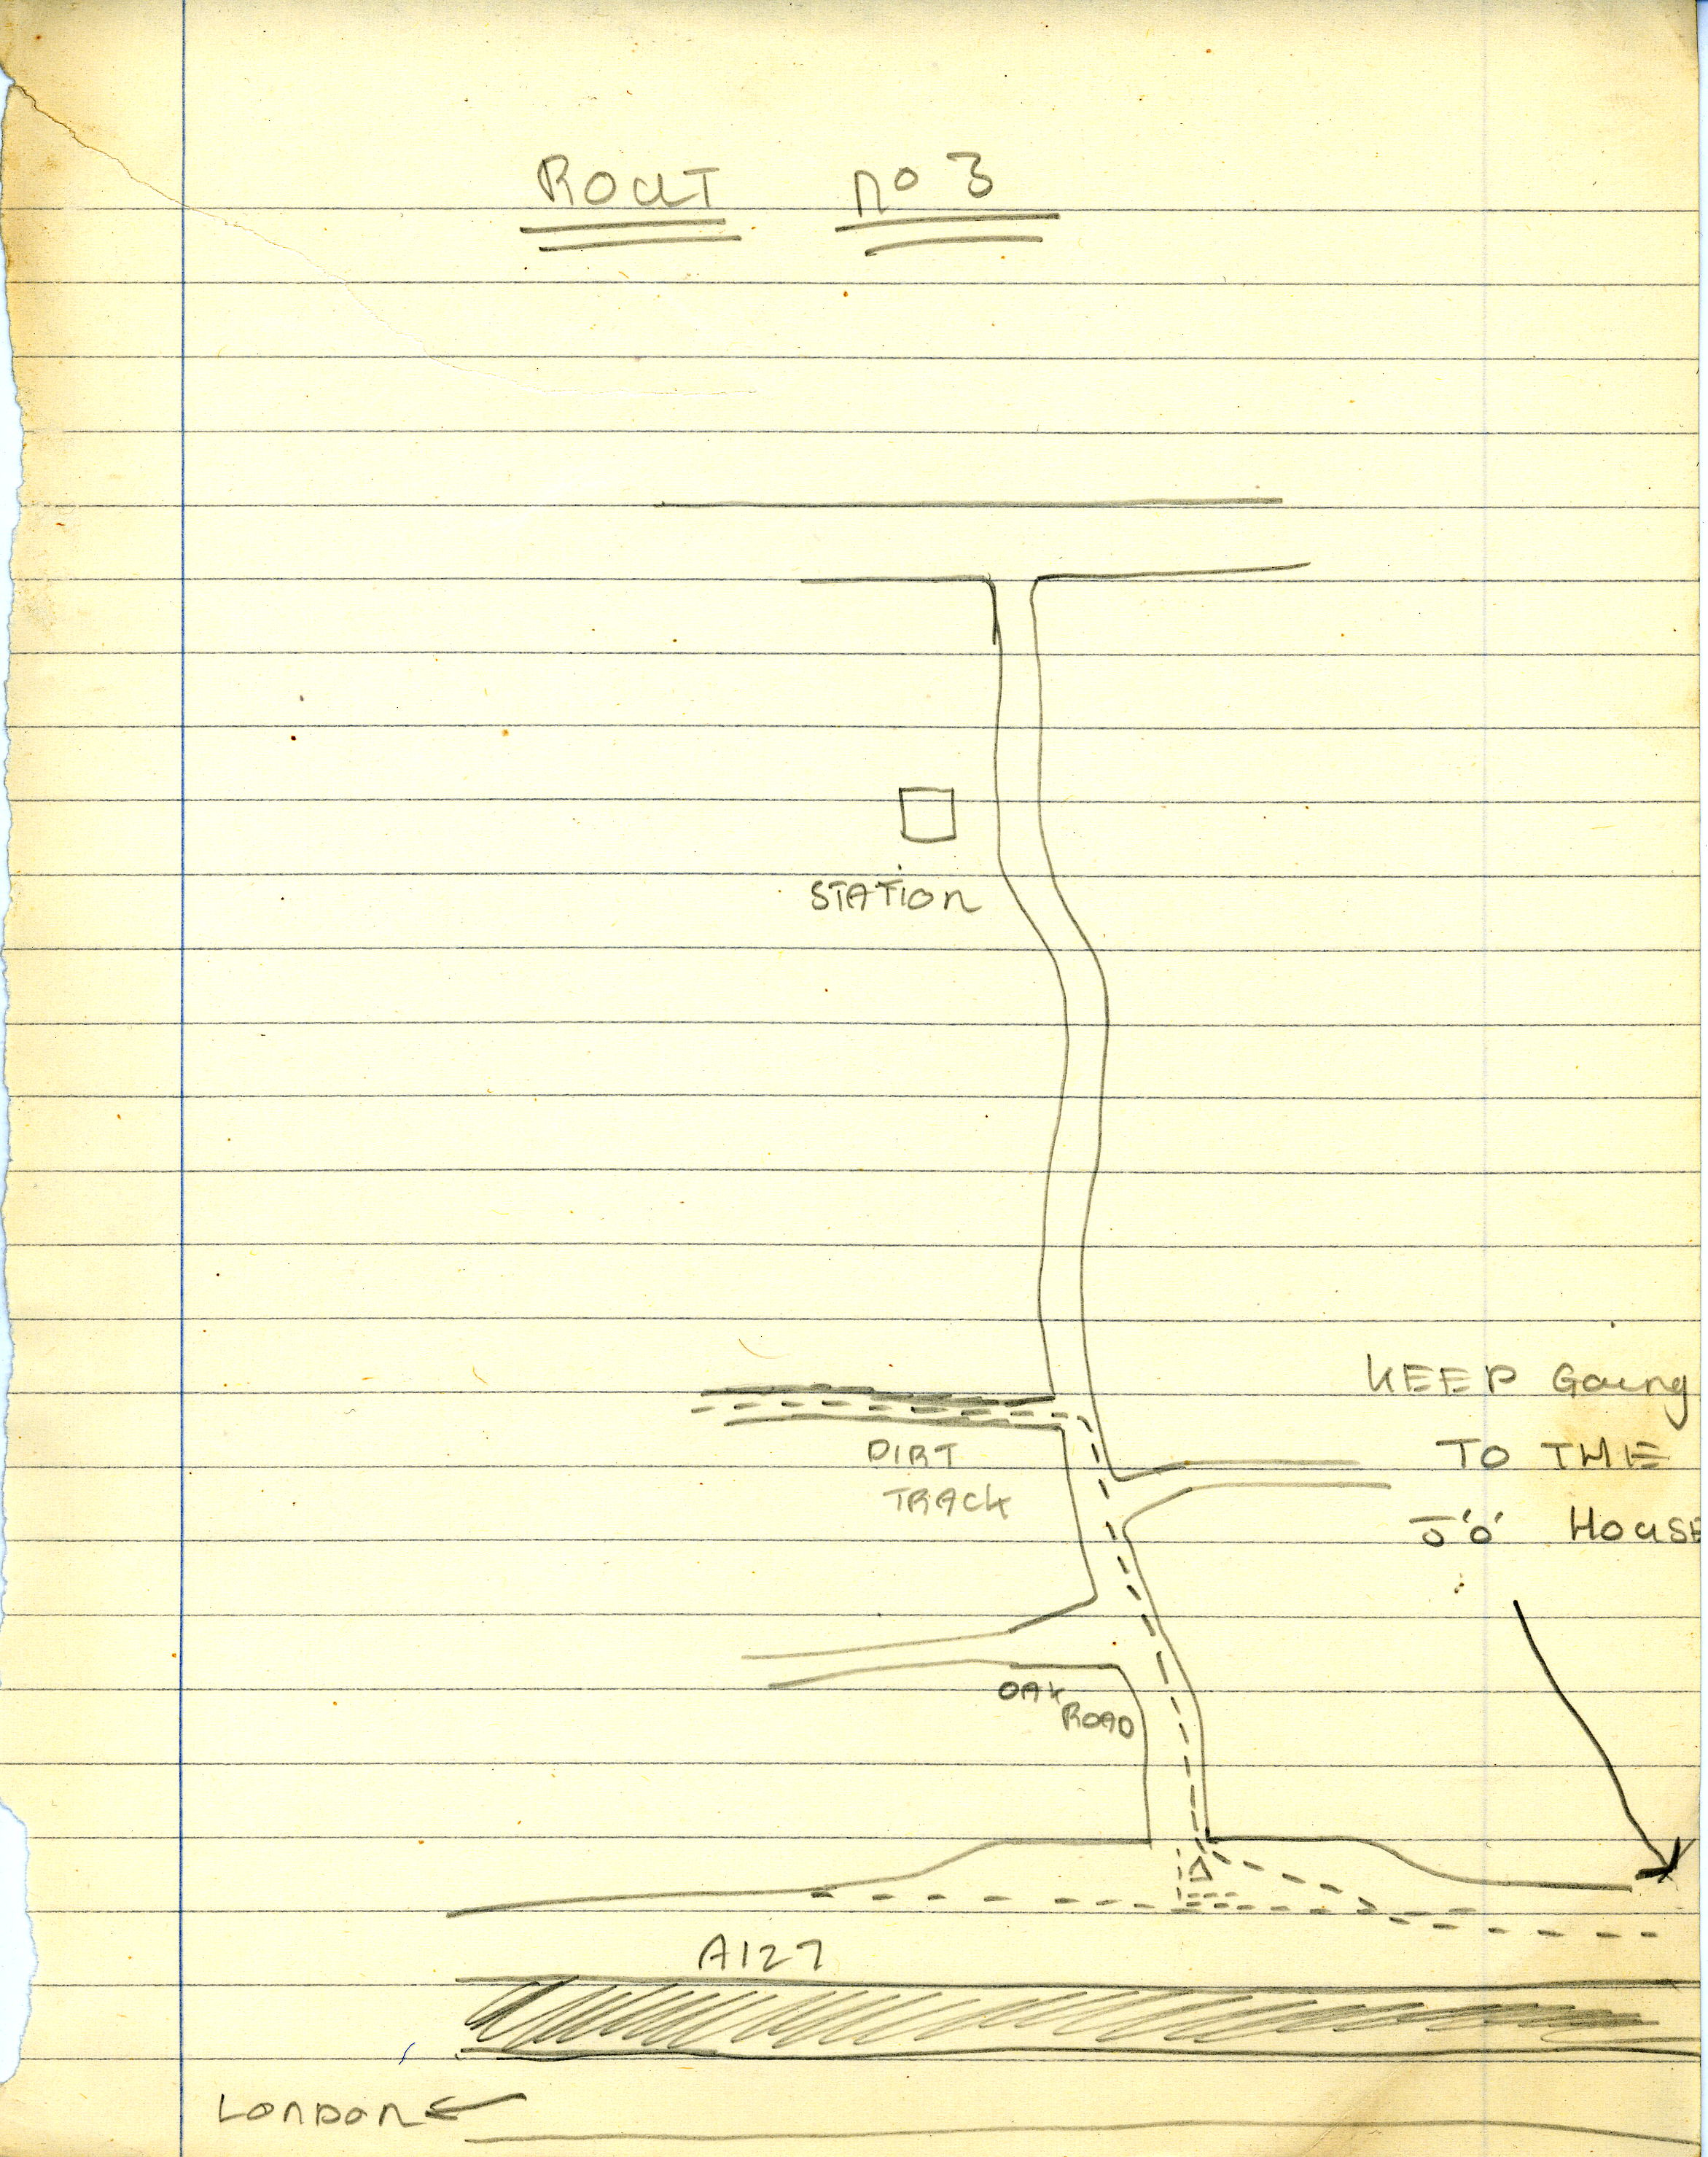 4- Decoy route No3